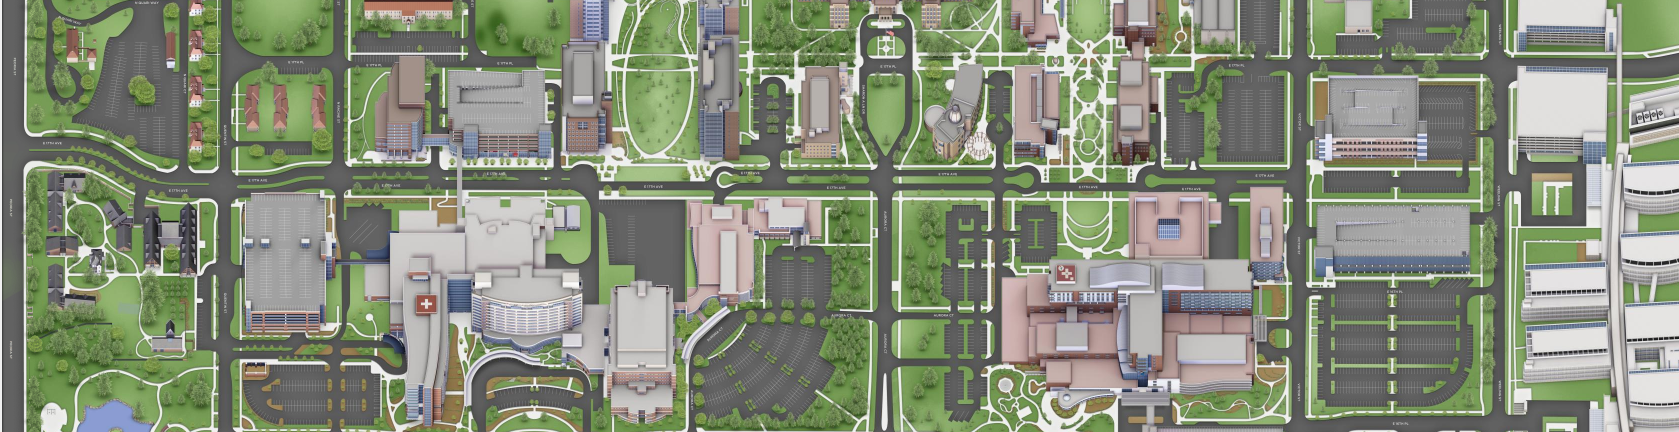 Campus Map Image- Click for Google Maps